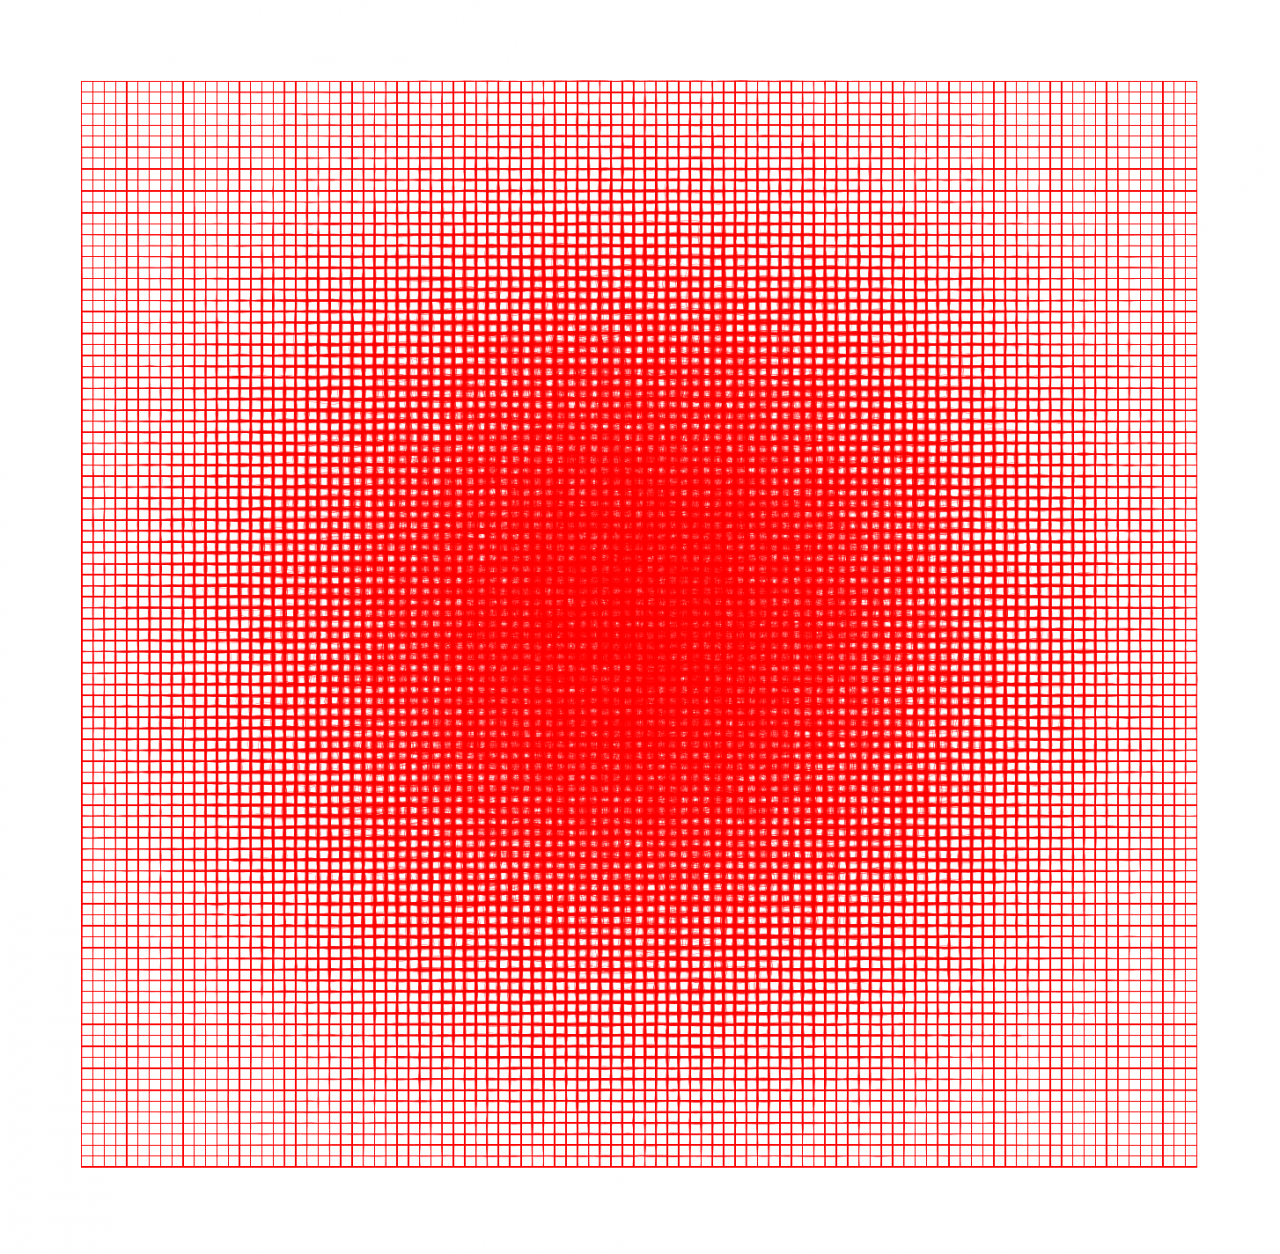 2D square of red grid lines condensing towards the centre in the shape of a circle